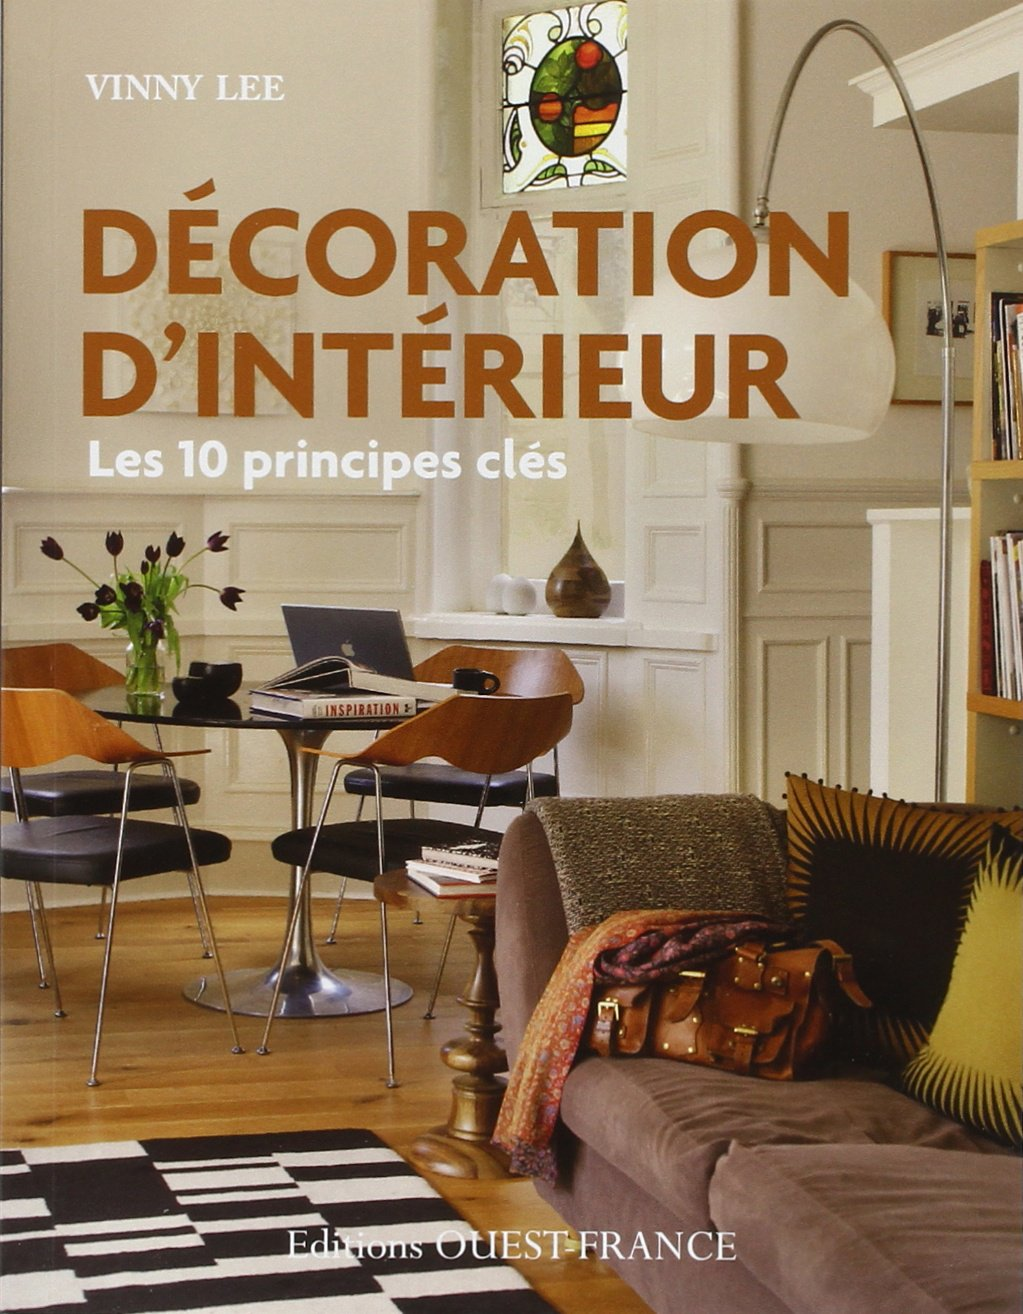 Amazon.fr   DECORATION D'INTERIEUR : LES 10 PRINCIPES CLES   Vinny